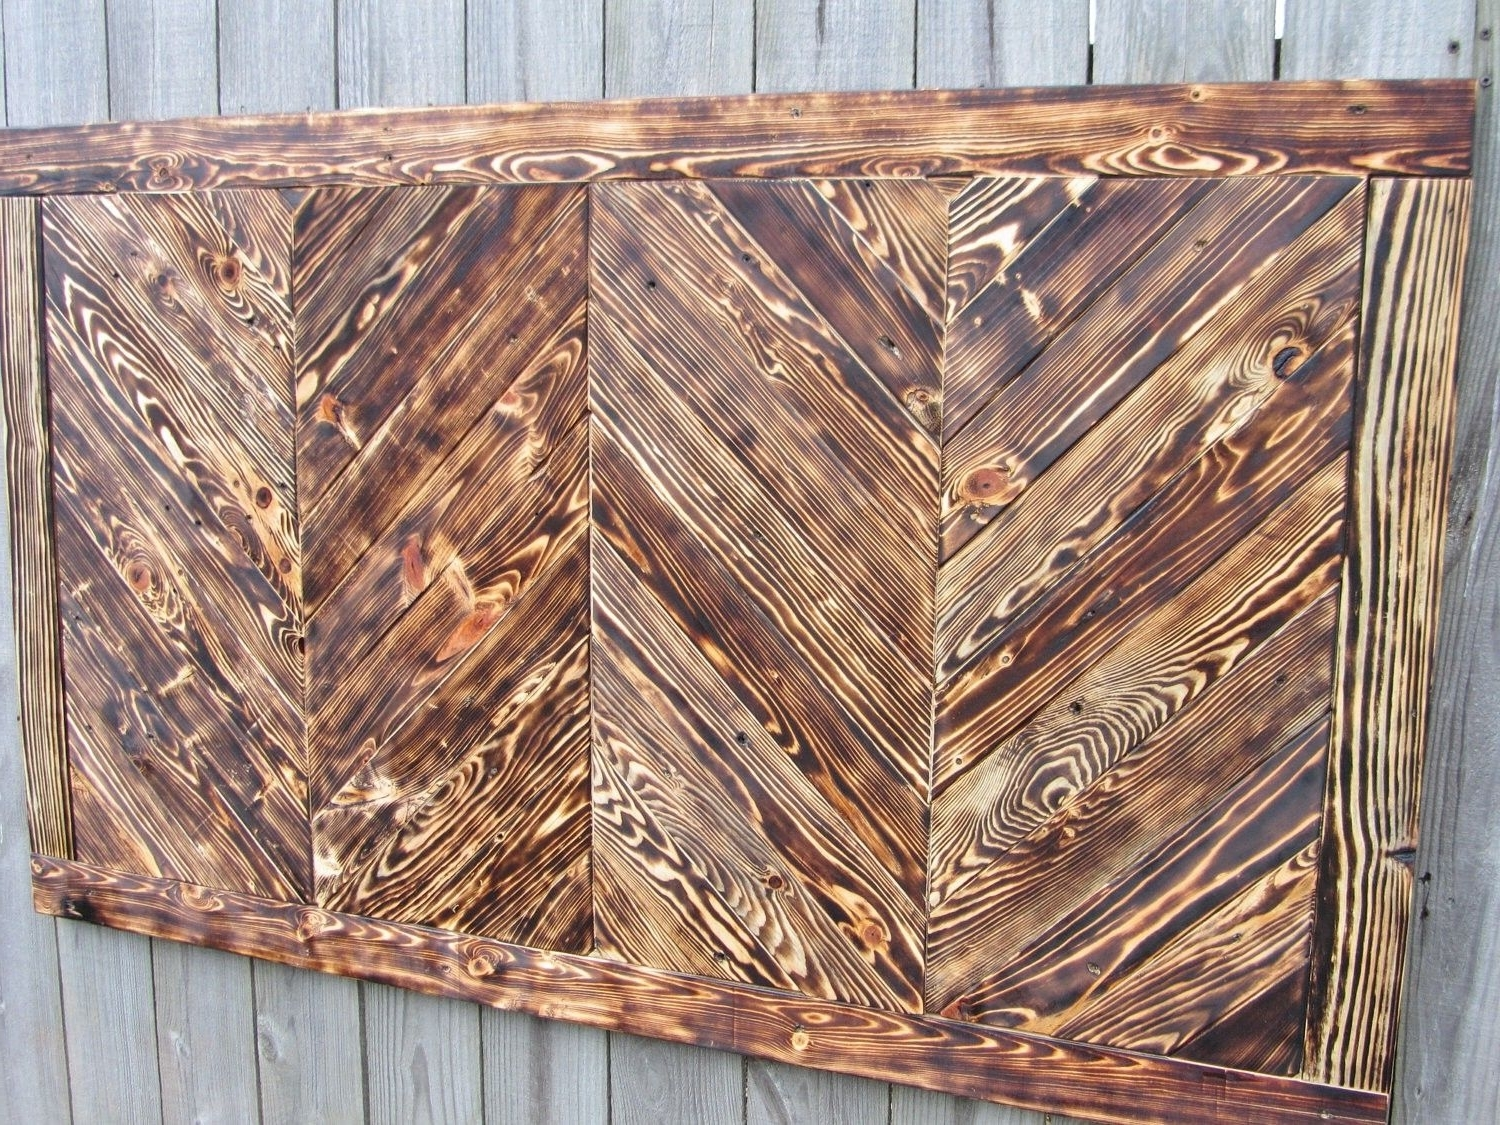 Trendy Personalized Wood Wall Art Regarding Hand Crafted Chevron Wood Wall Art Made From Reclaimed Pallet Wood (View 19 of 20)